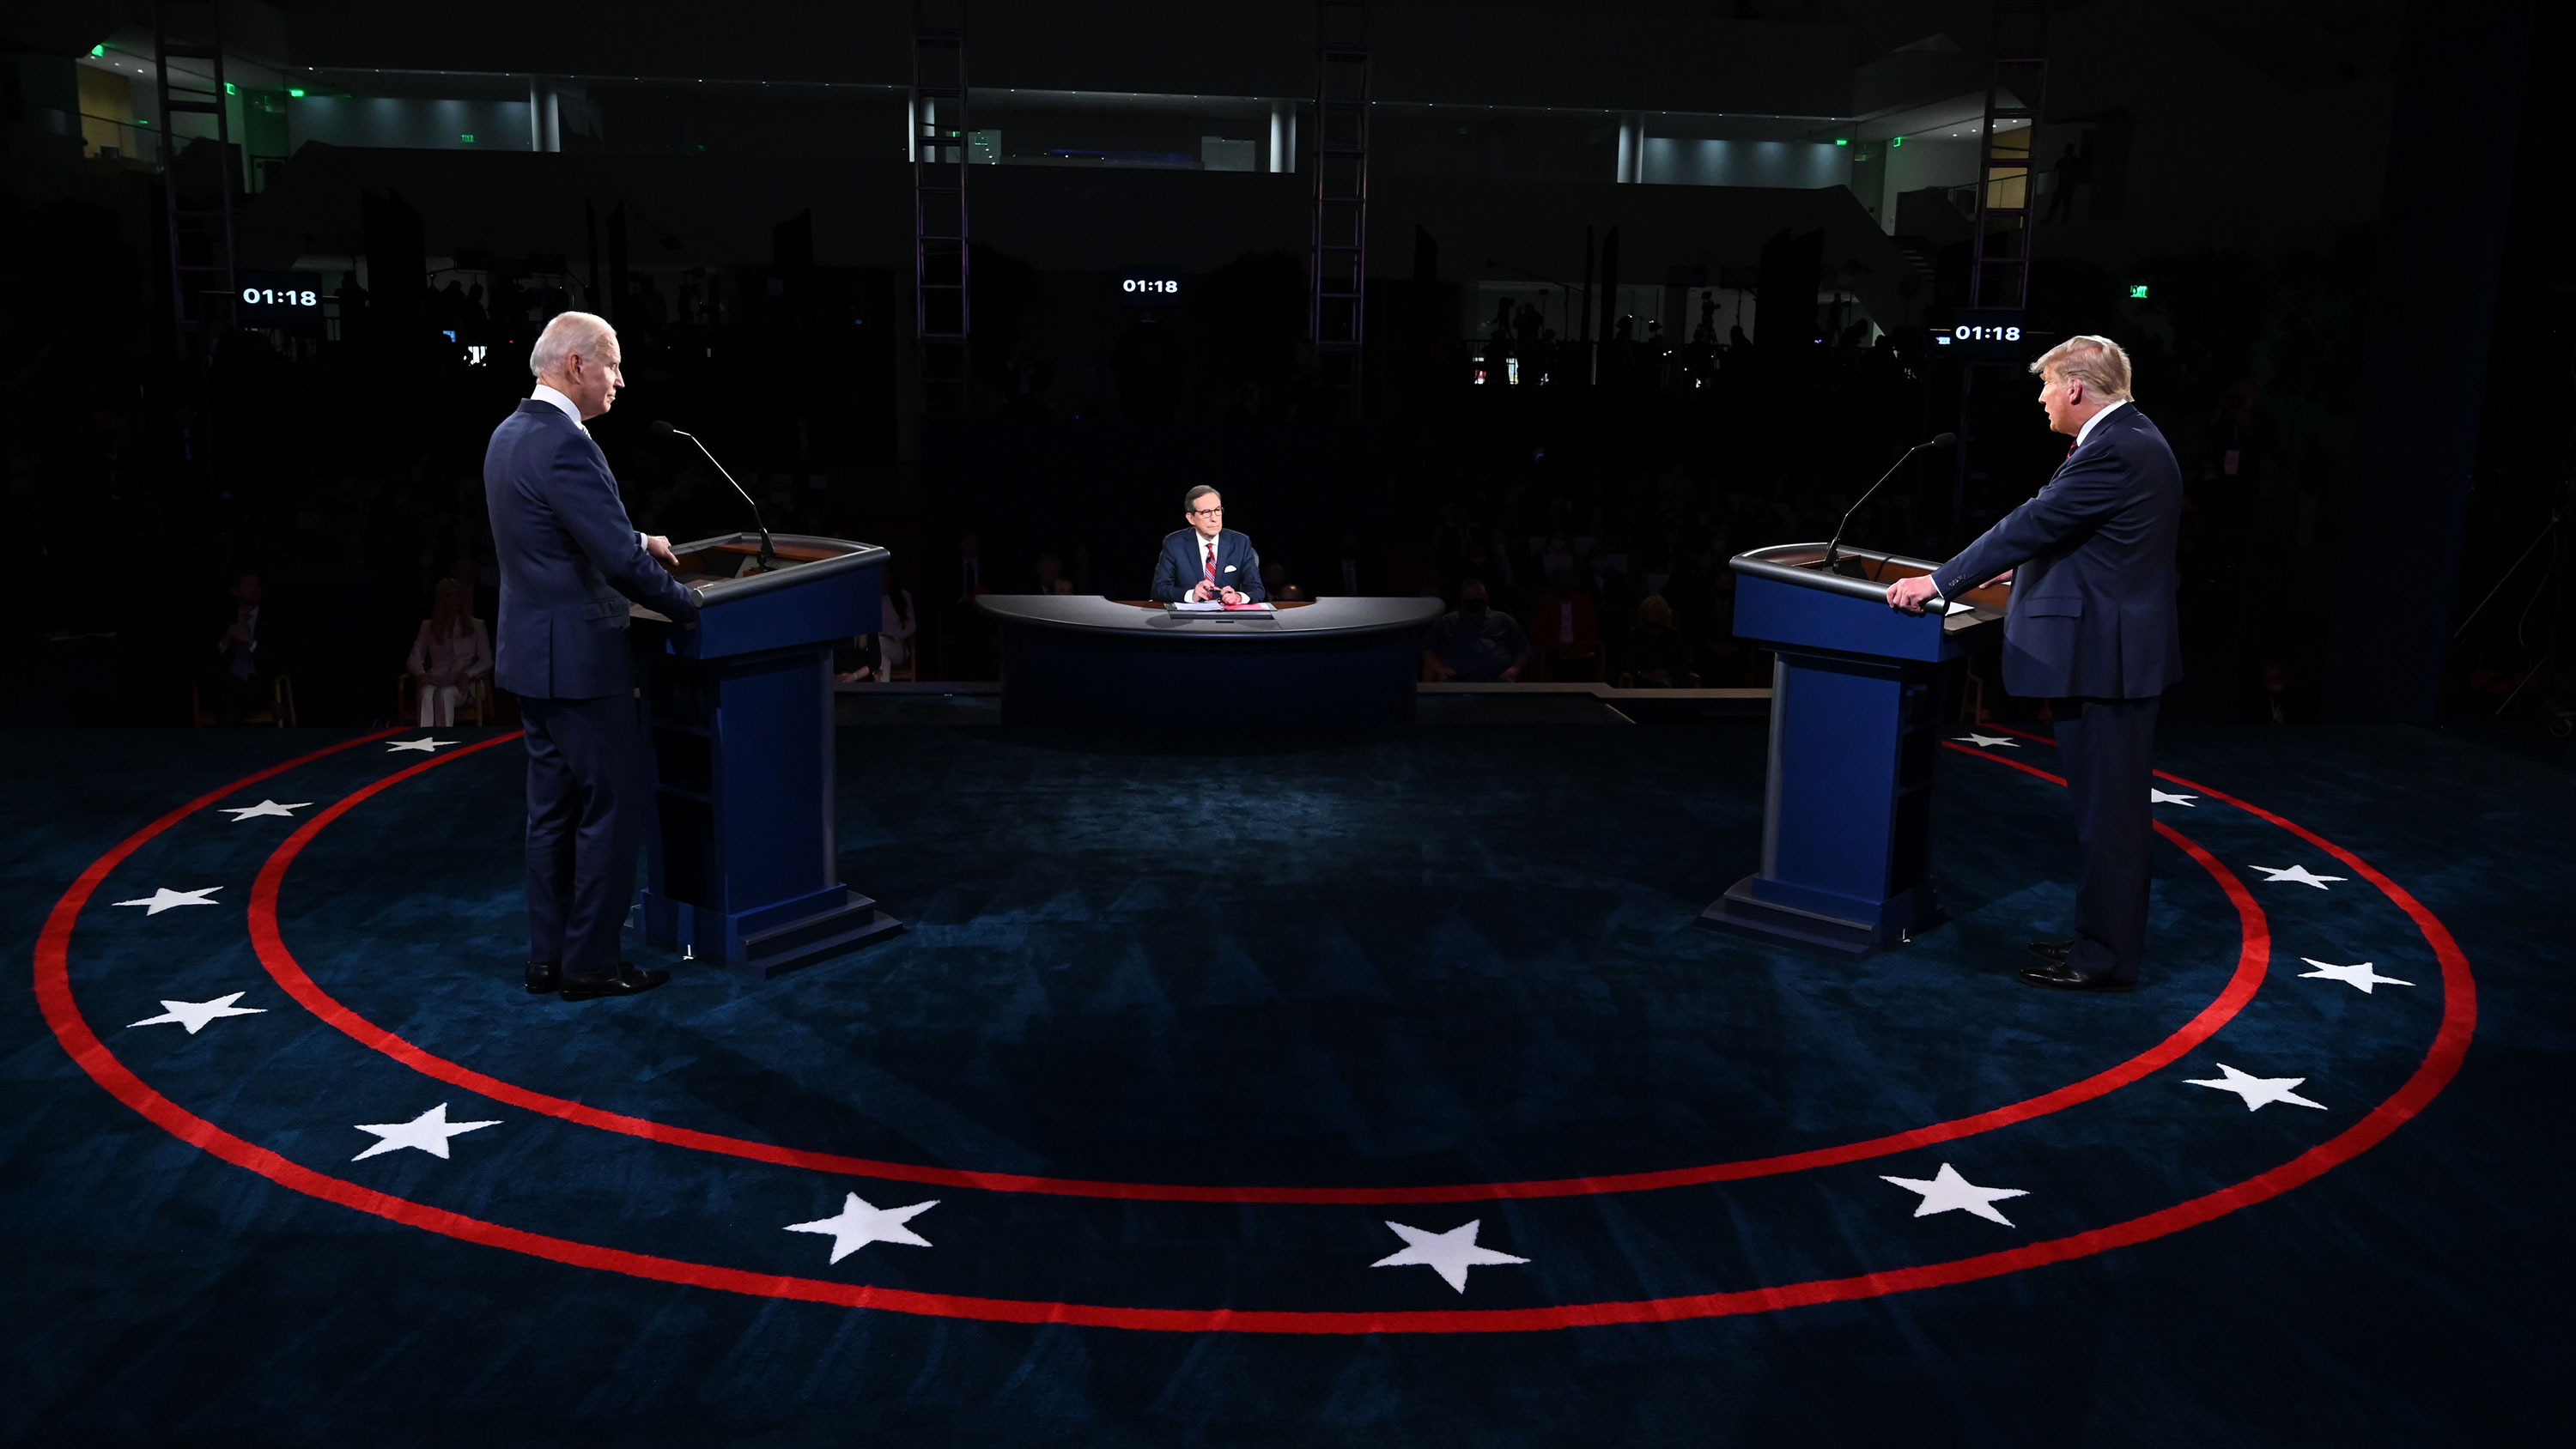 President Donald Trump and Democratic presidential nominee Joe Biden participate in the first presidential debate on September 29 in Cleveland, Ohio.